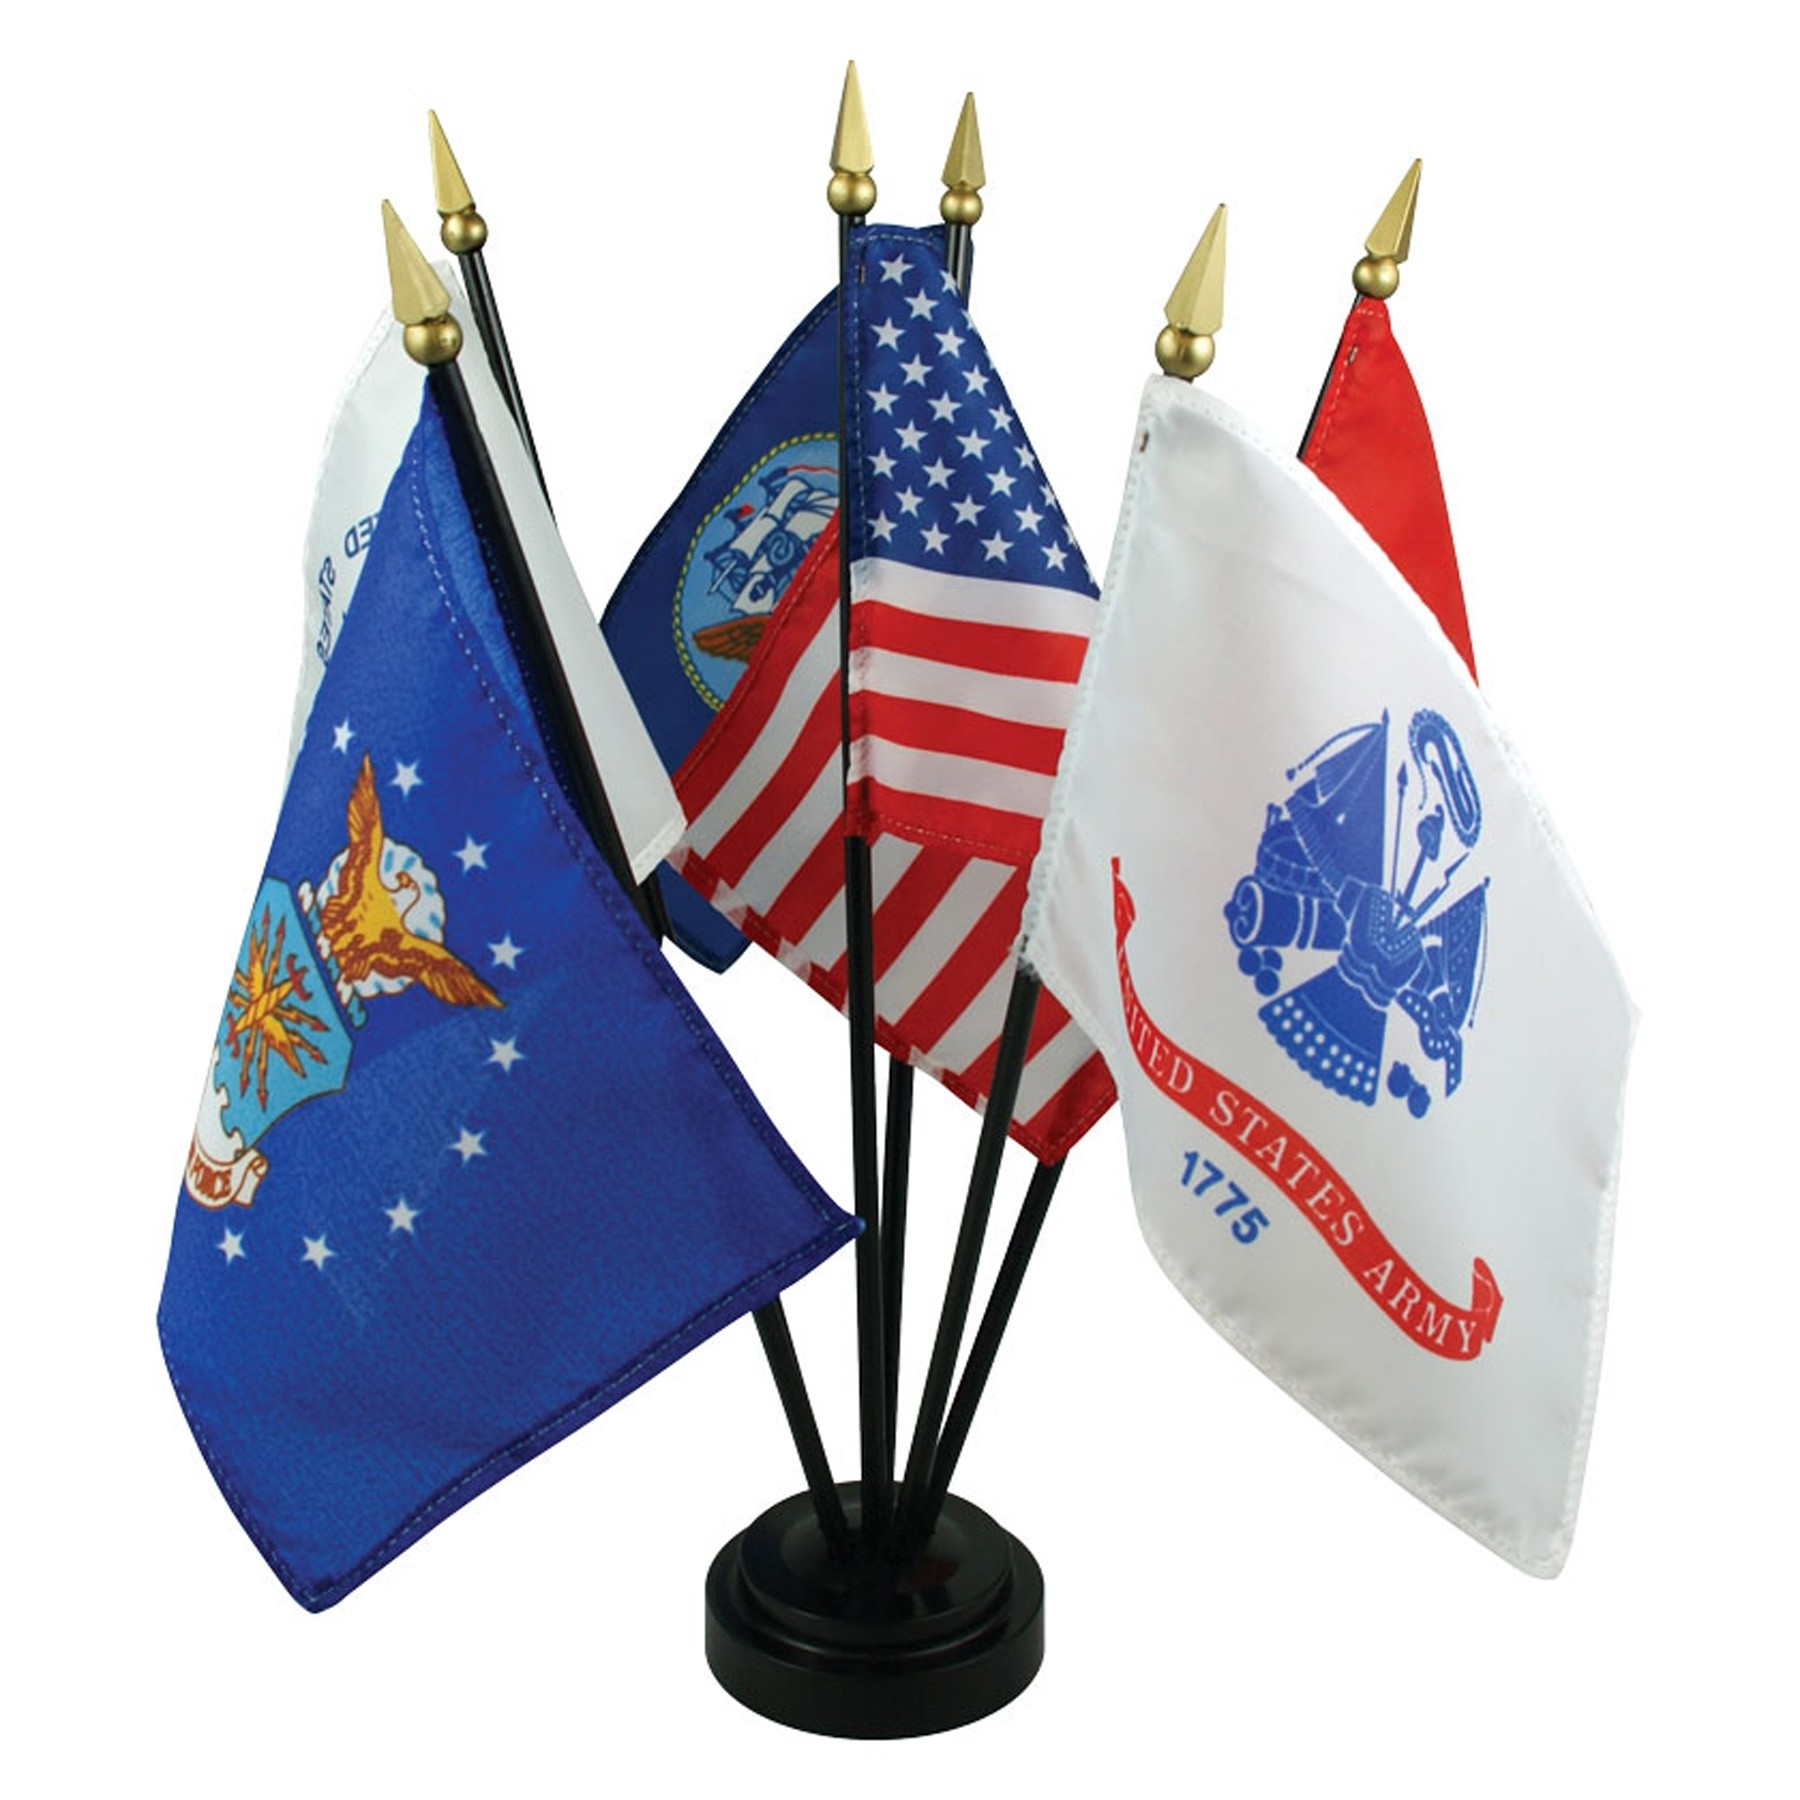 State Desk Flags